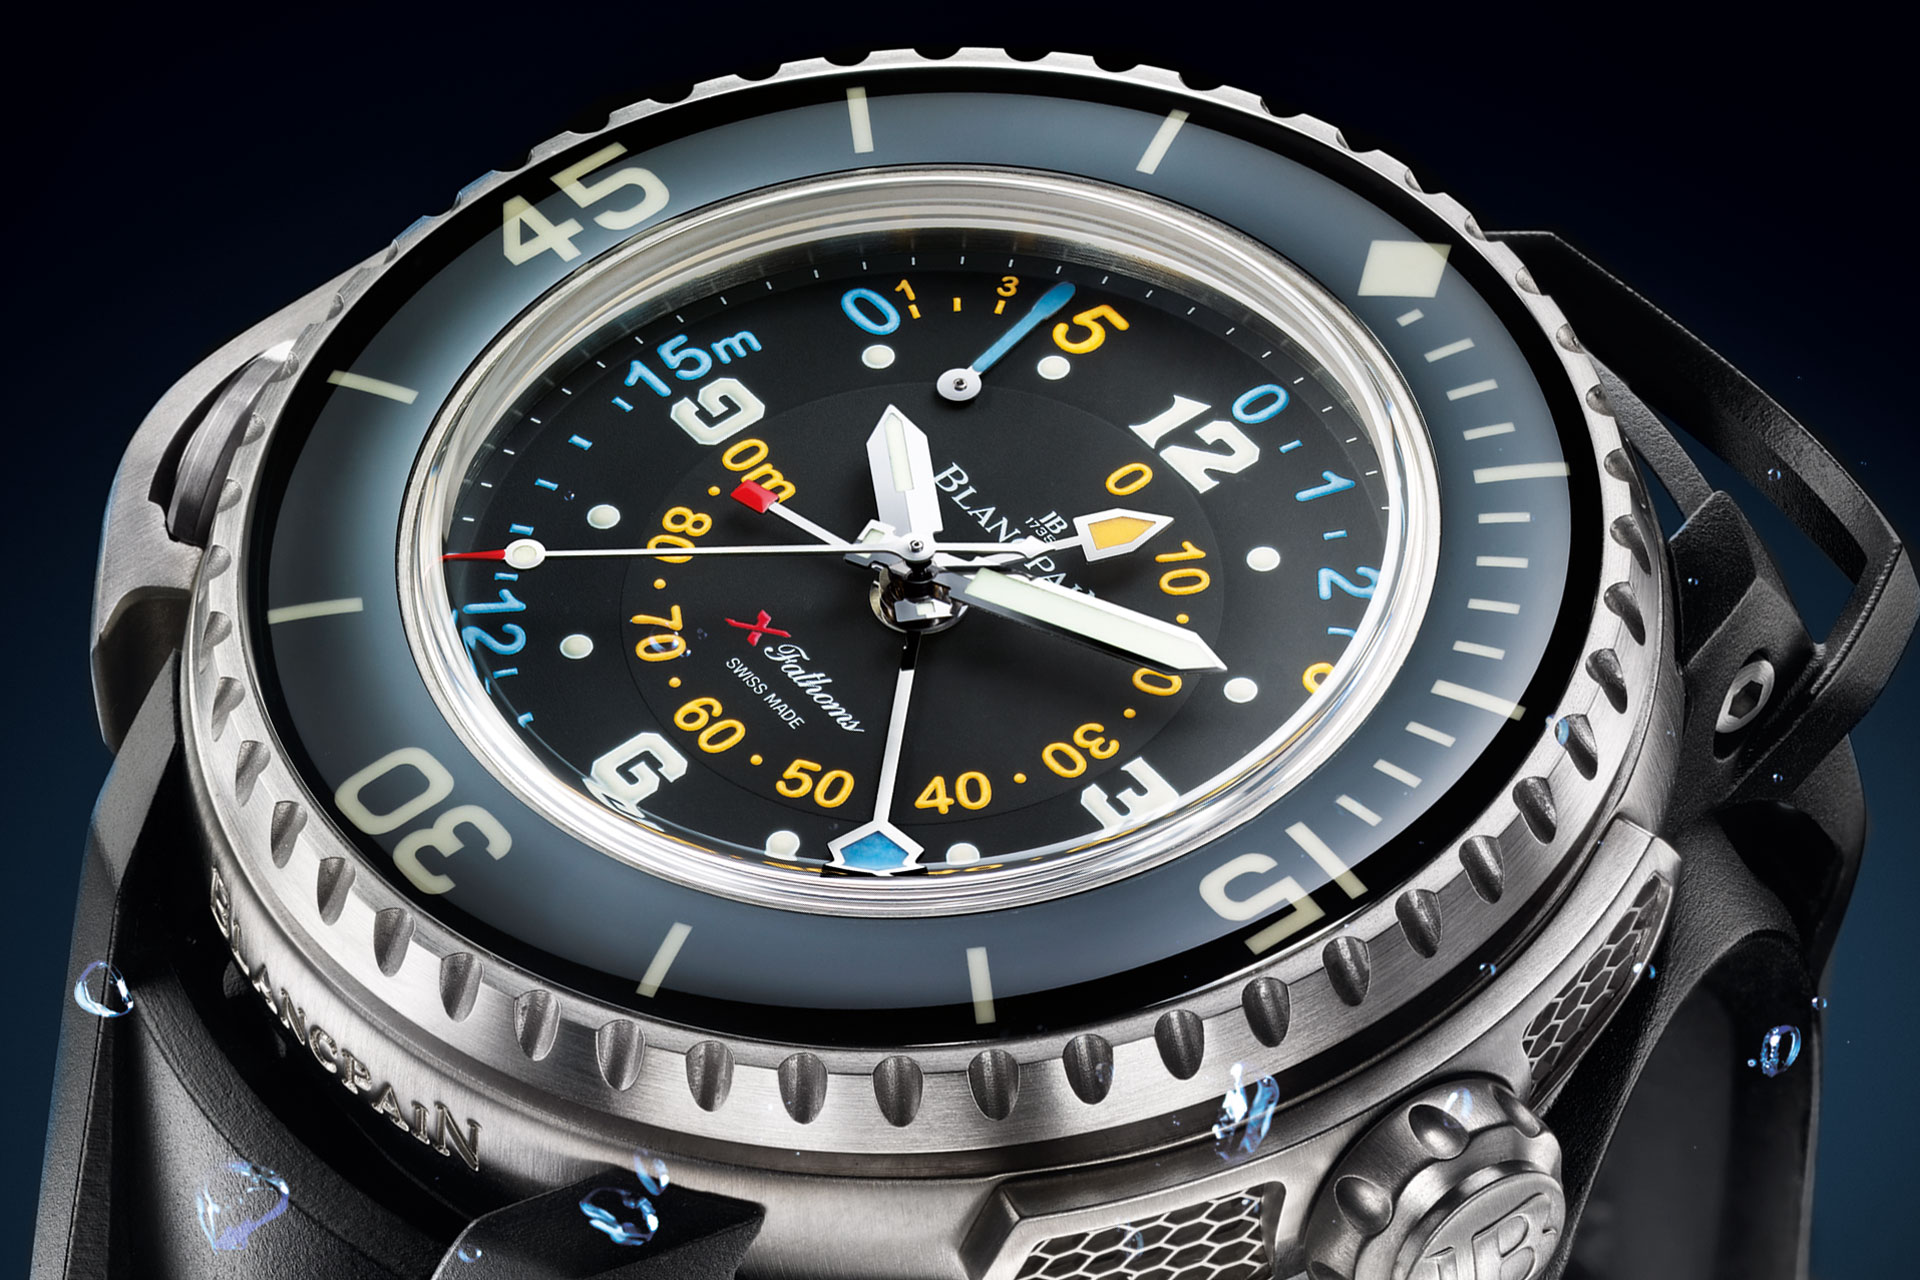 Casting the net: 5 under-the-radar 300m divers from Blancpain to Sinn